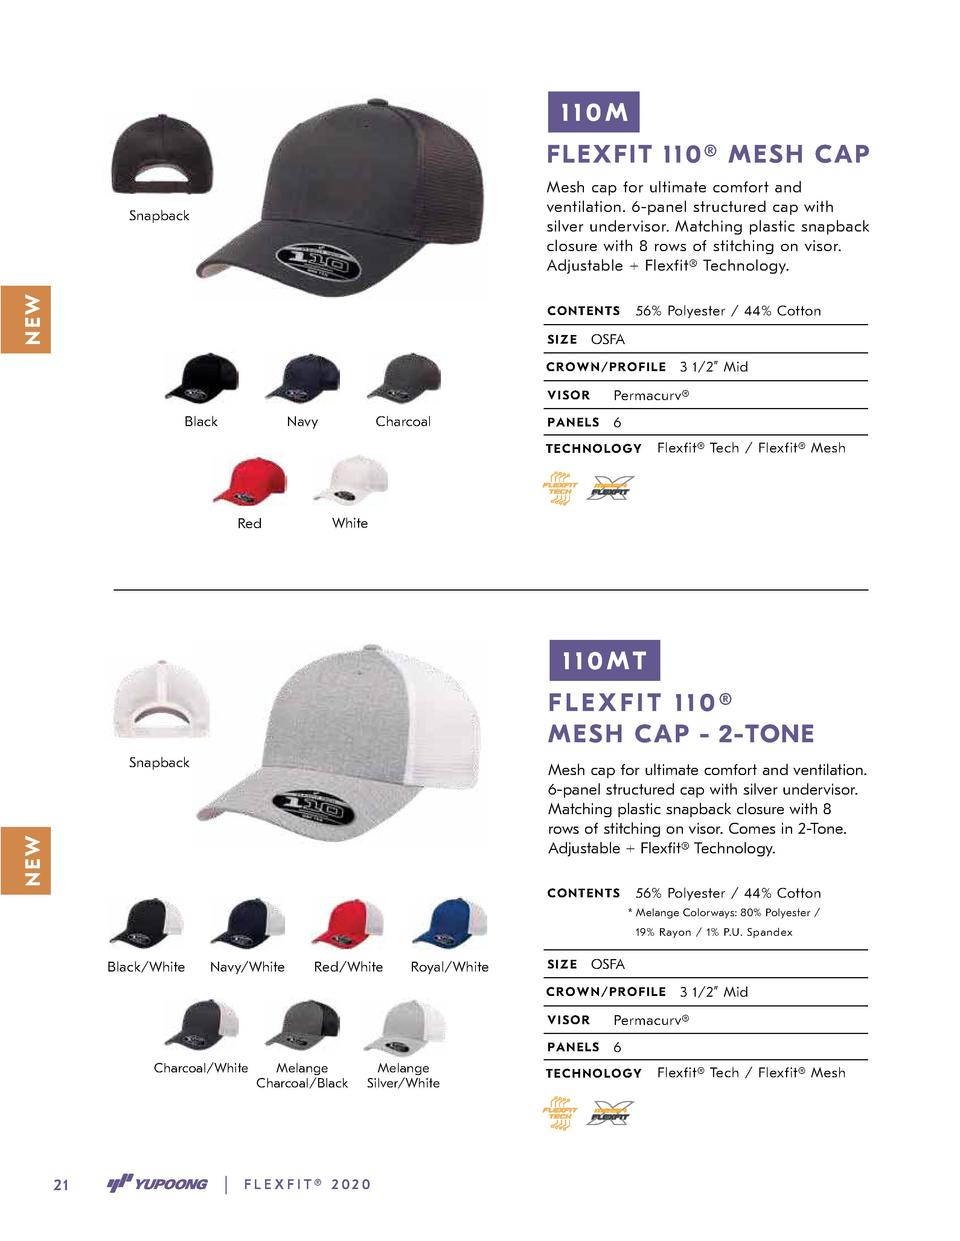 110M FLE XFIT 1 1 0    ME S H CA P Mesh cap for ultimate comfort and ventilation. 6-panel structured cap with silver under...